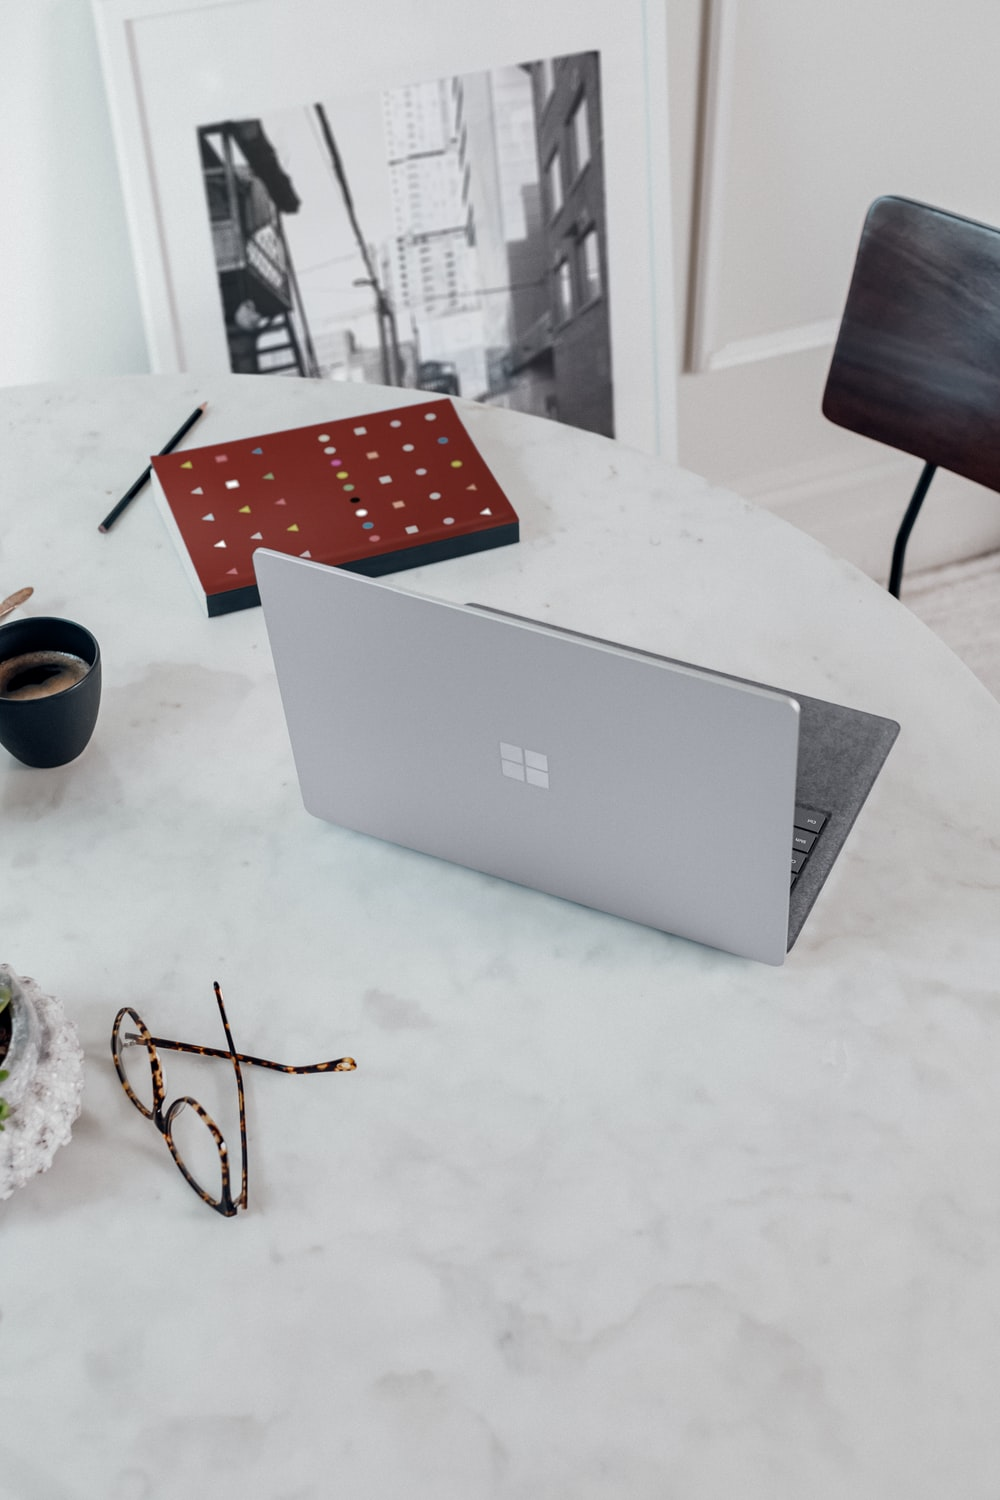 silver microsoft surface laptop computer on white table